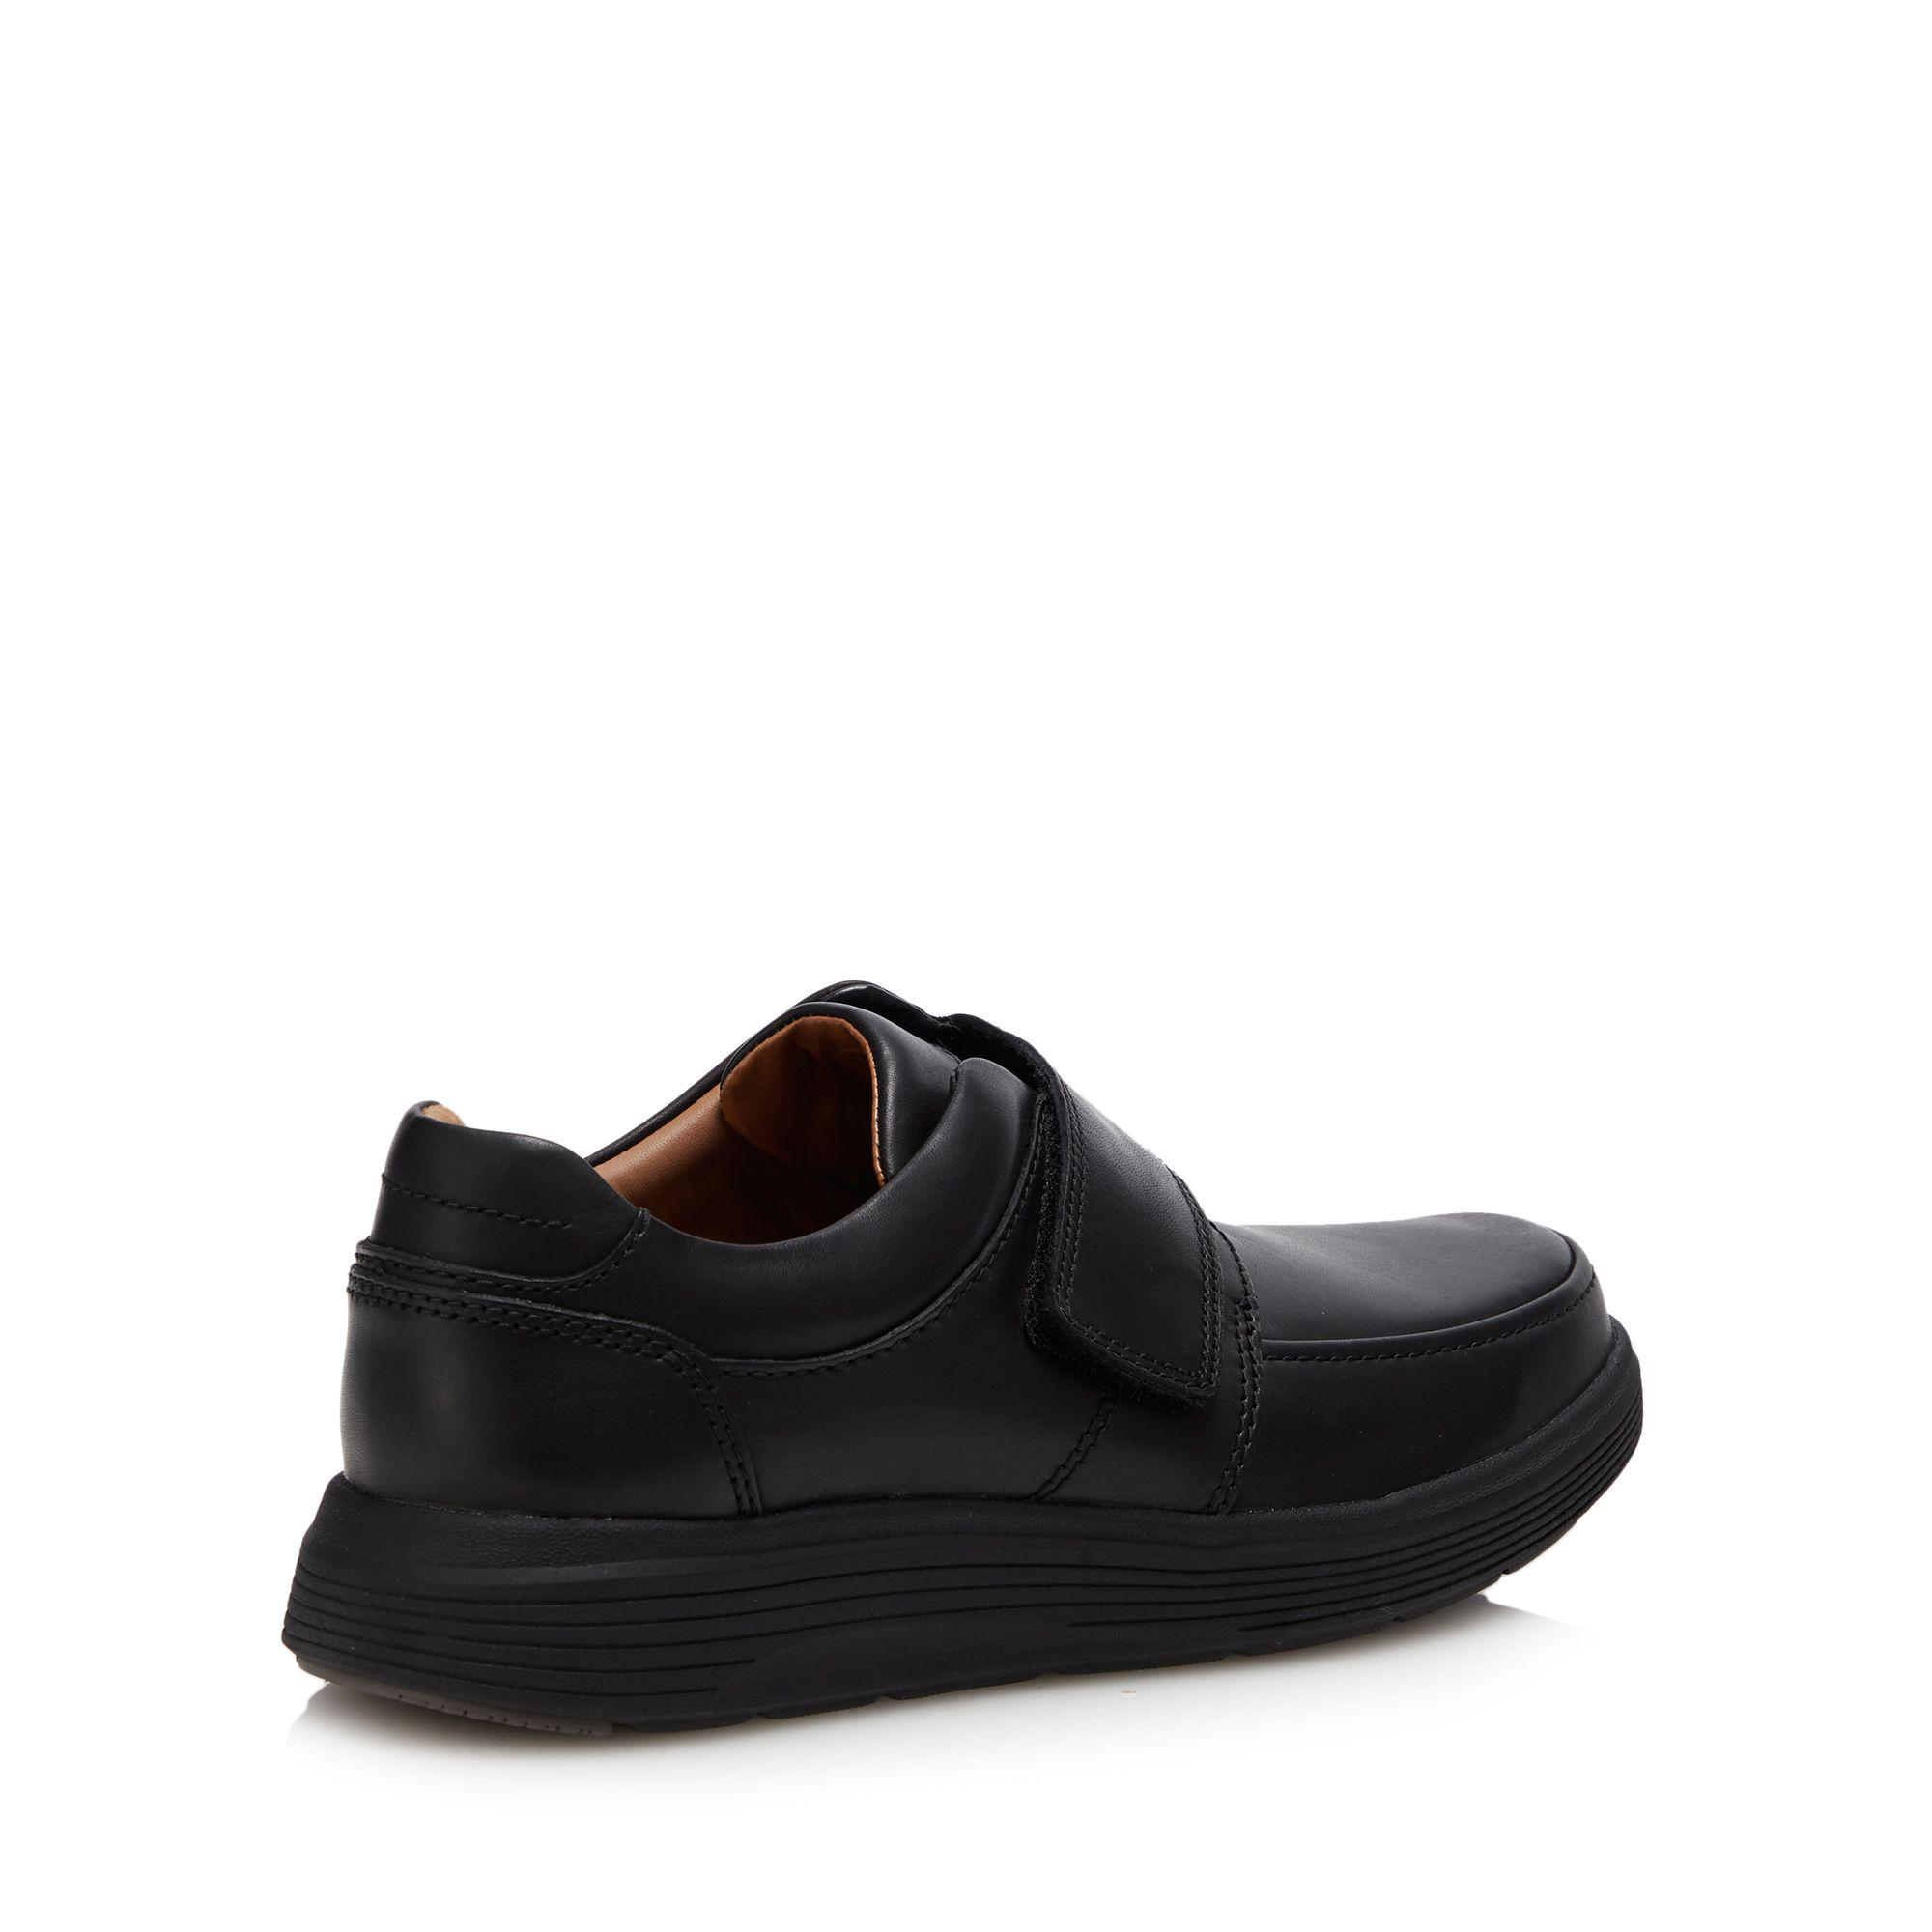 b0075aaa8e2 Dr. Martens Black Leather  un Abode  Shoes in Black for Men - Lyst